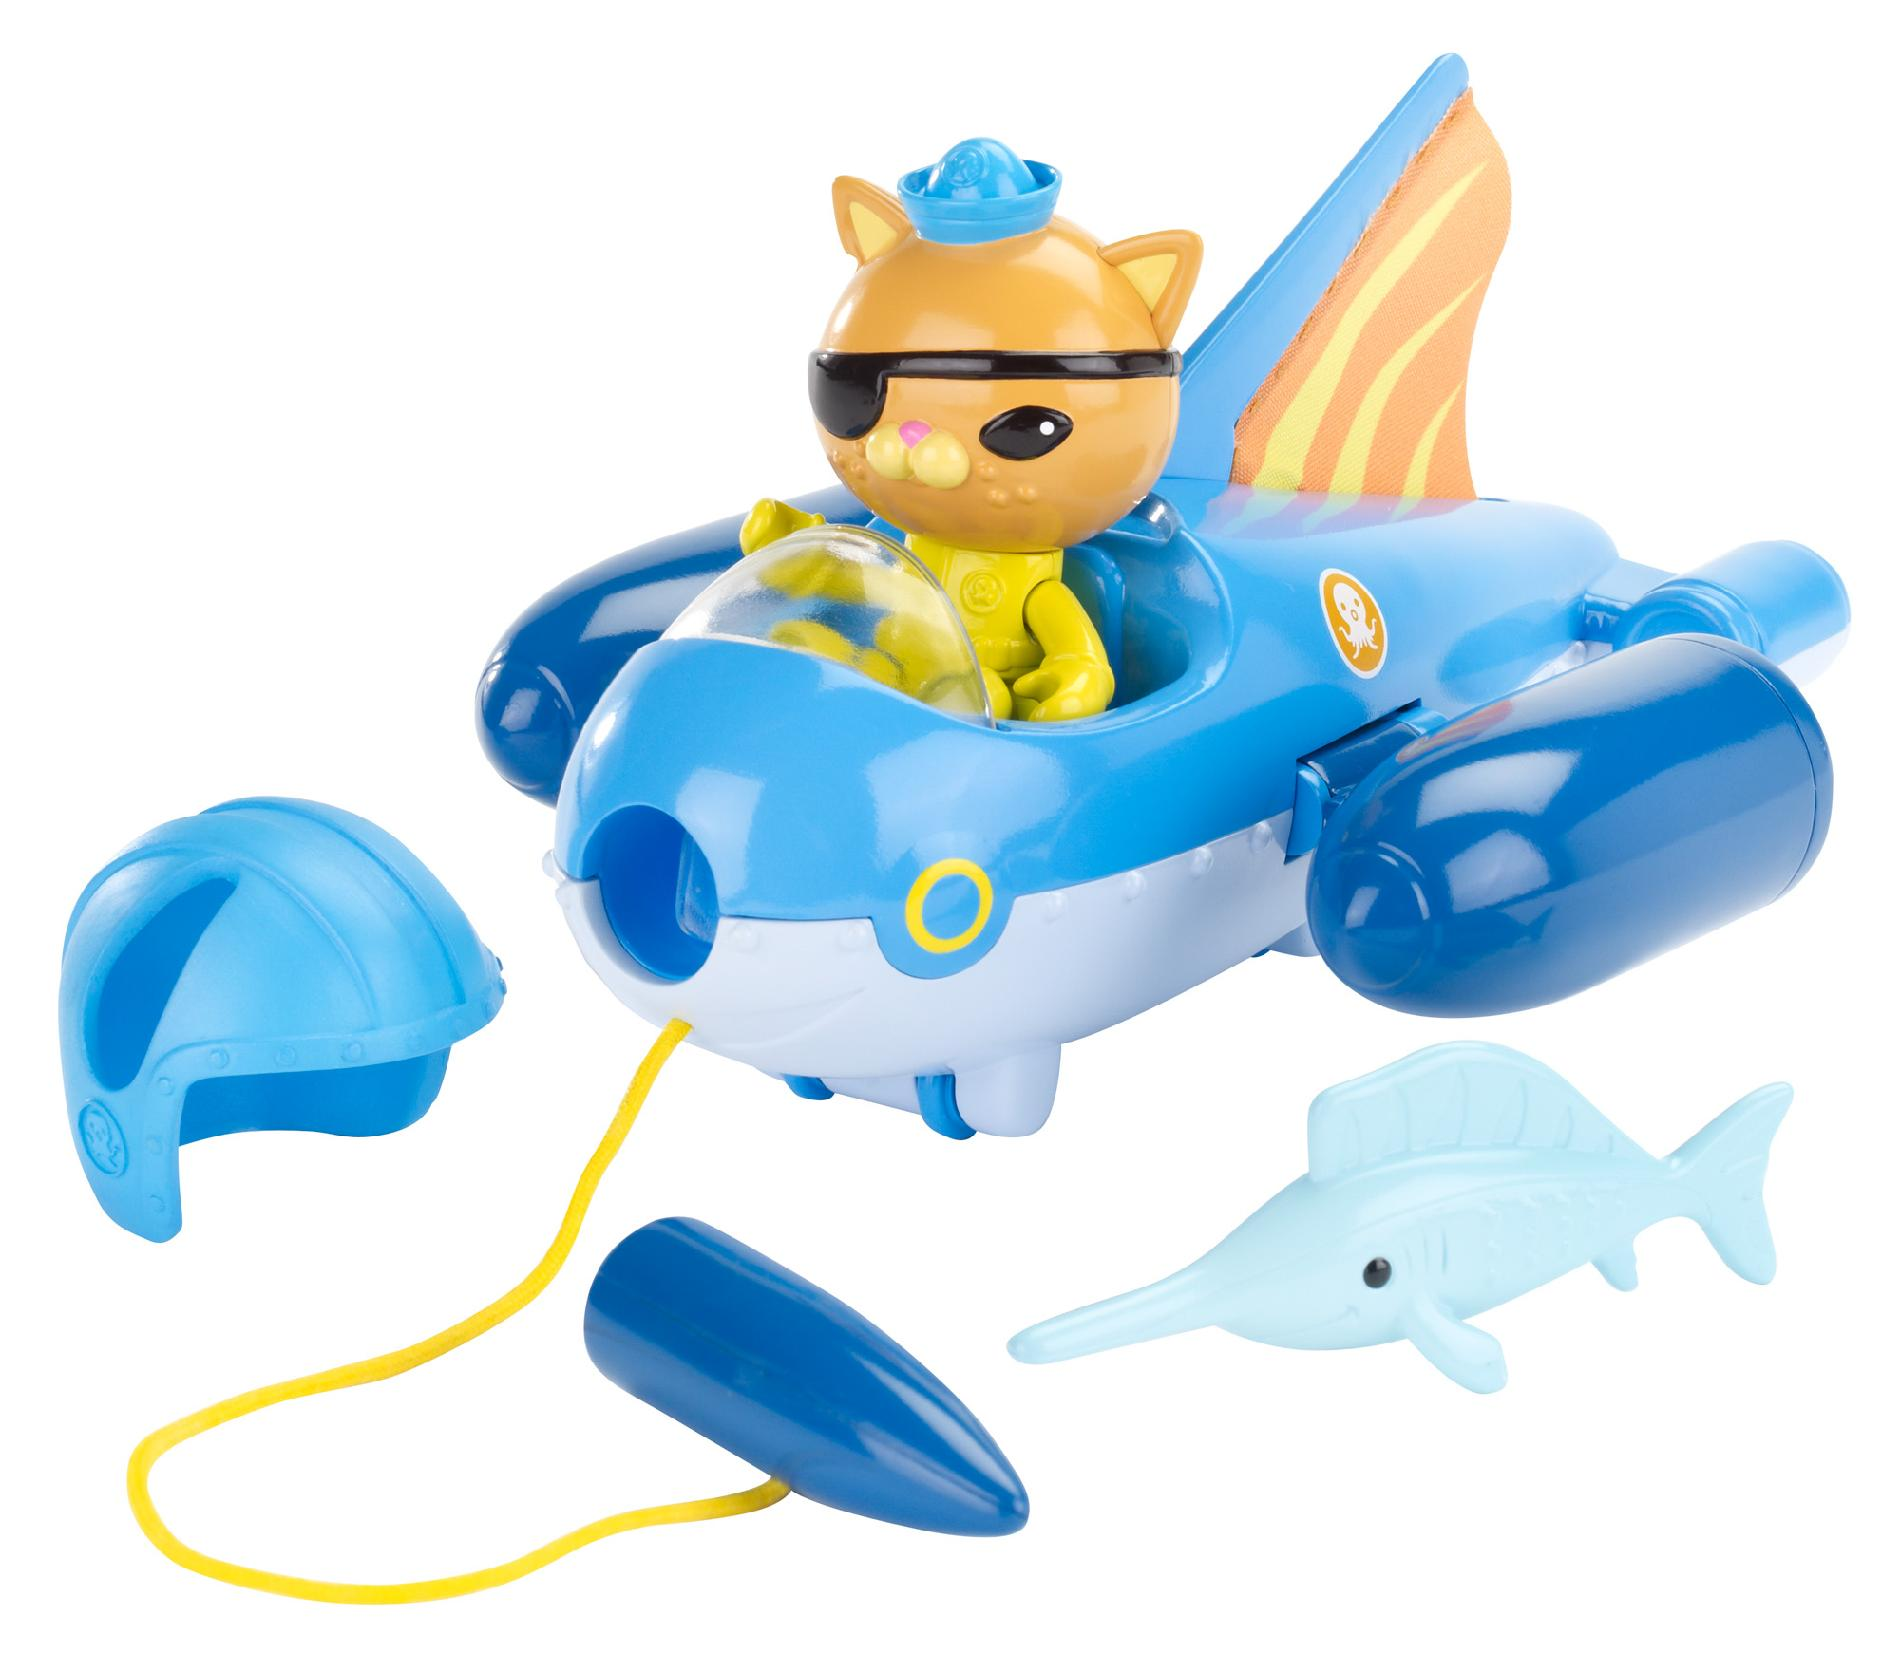 Disney Octonauts Gup Vehicle Gup-E and Kwazii - Toys & Games - Action Figures & Accessories ...